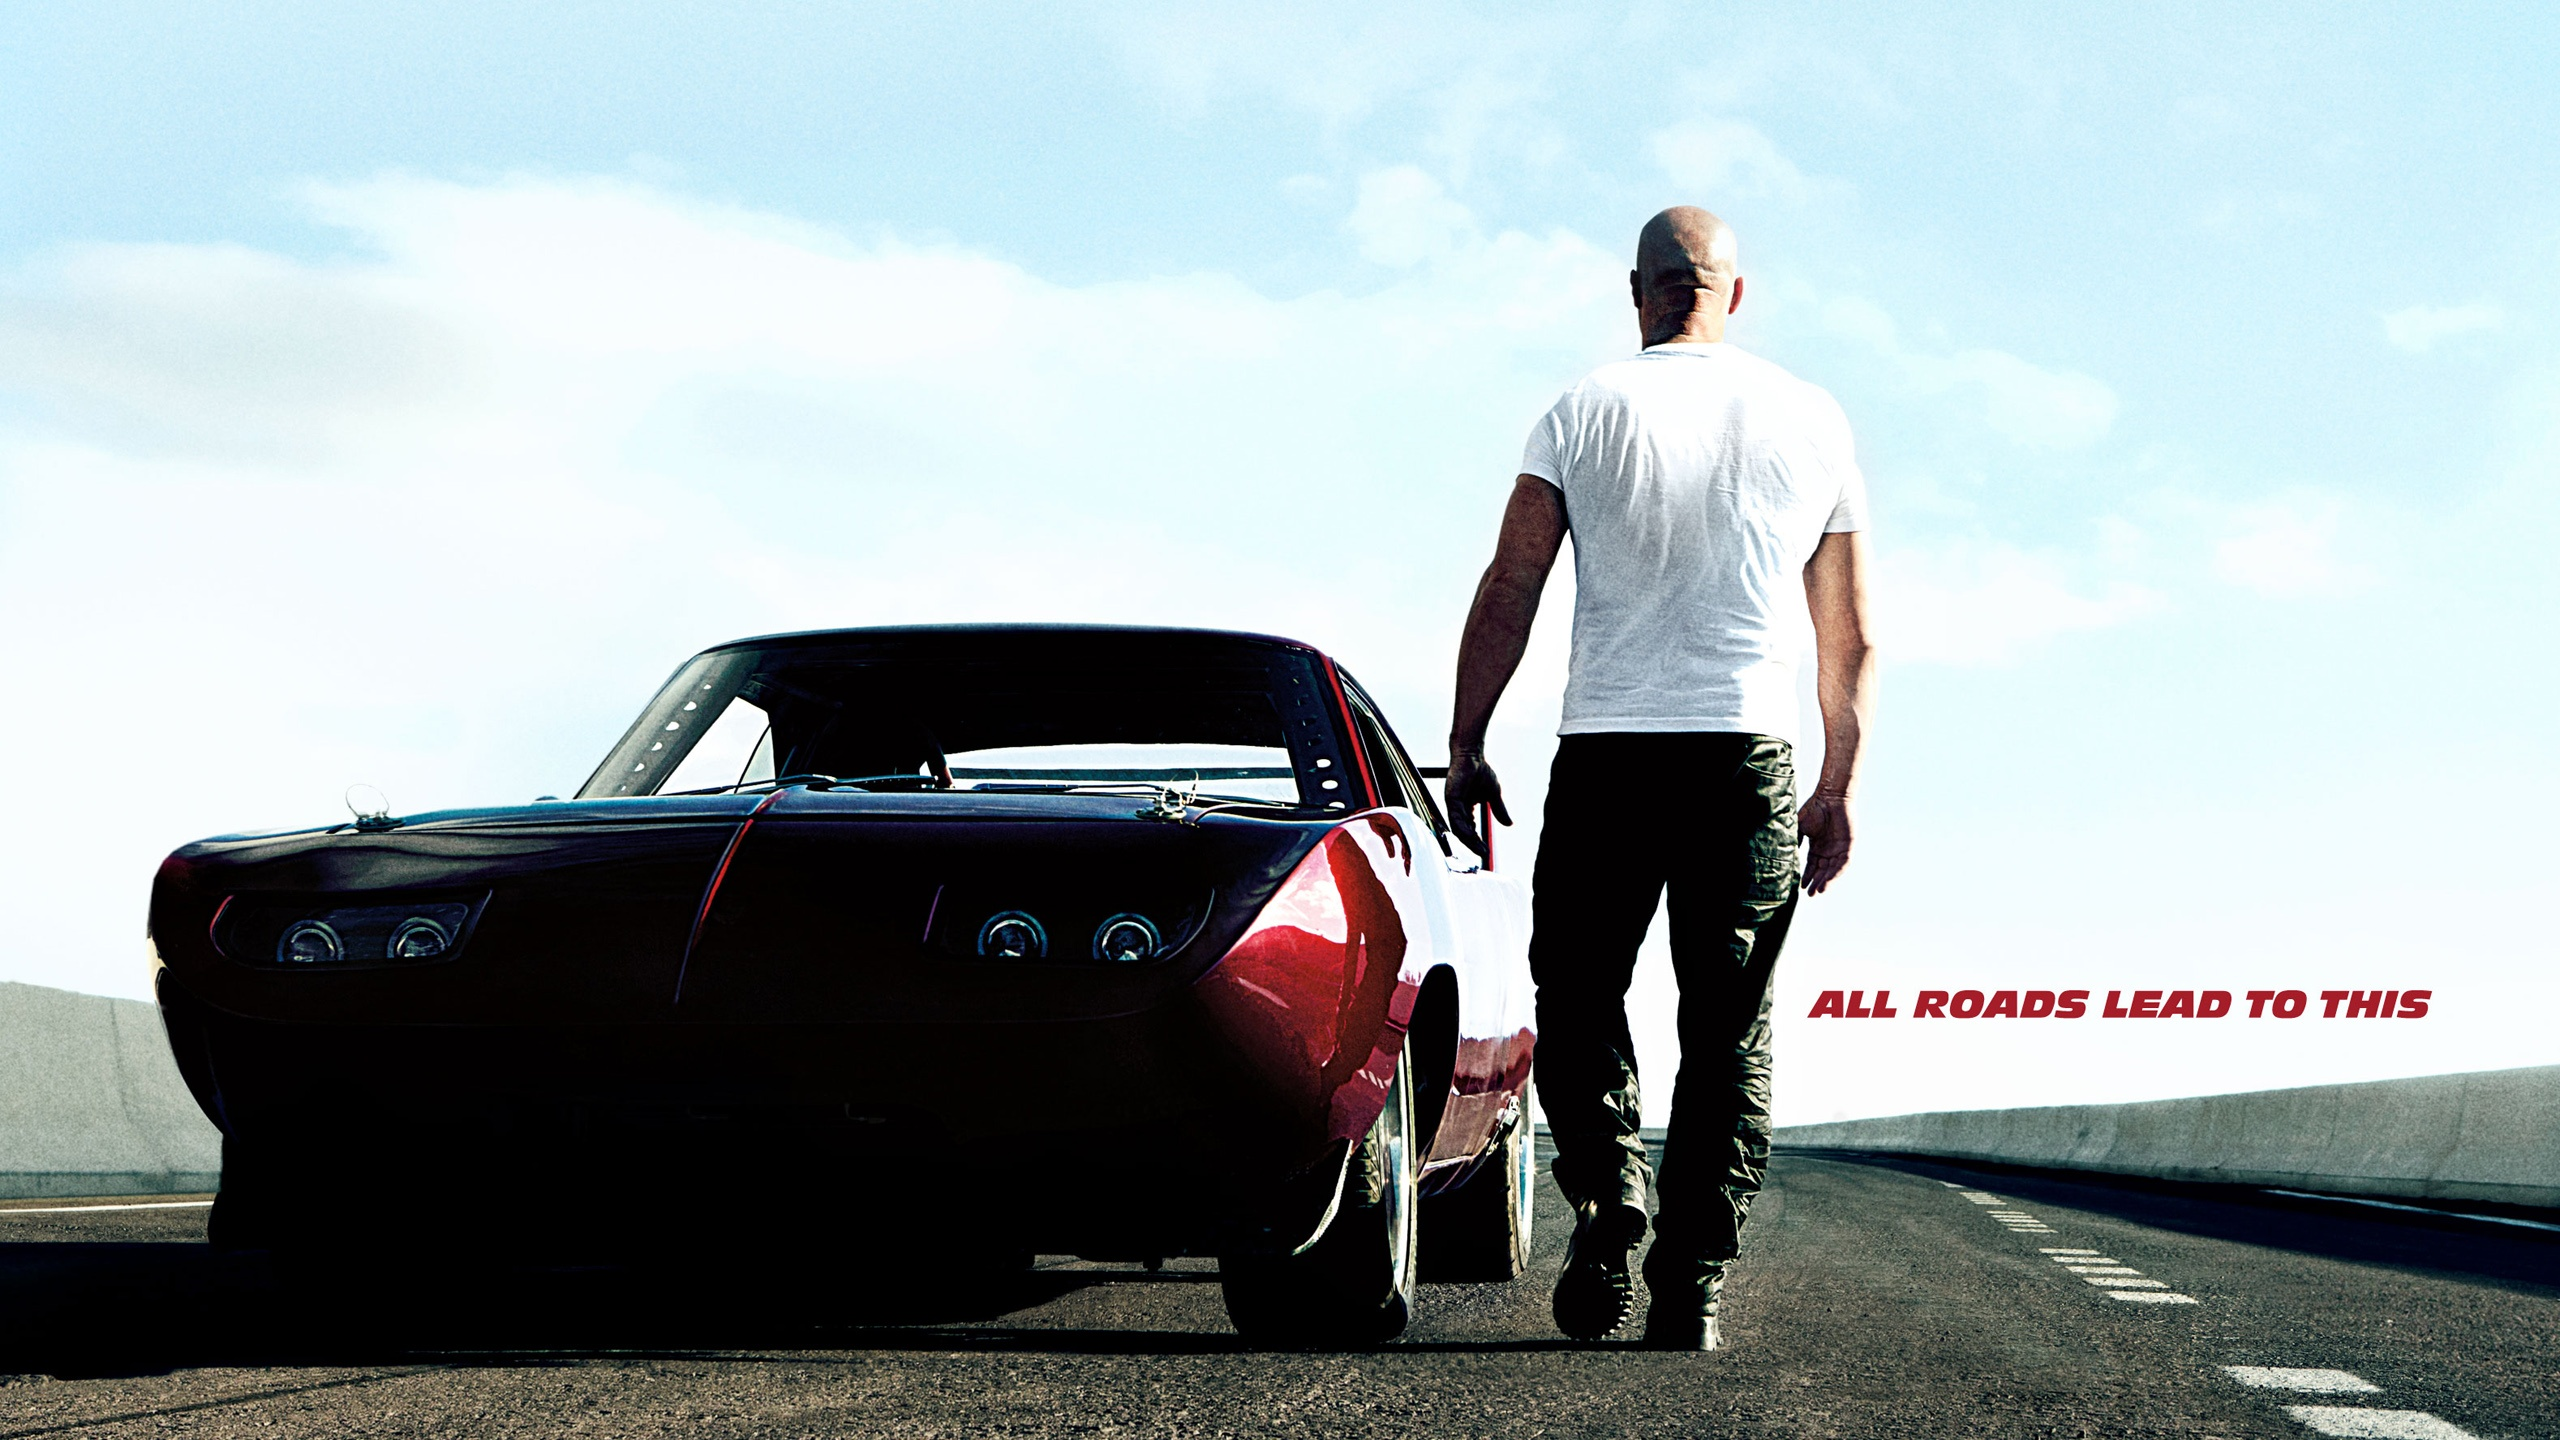 Dodge Charger Daytona Wallpaper 2014 The Cars Of Fast Furious 7 2560x1440